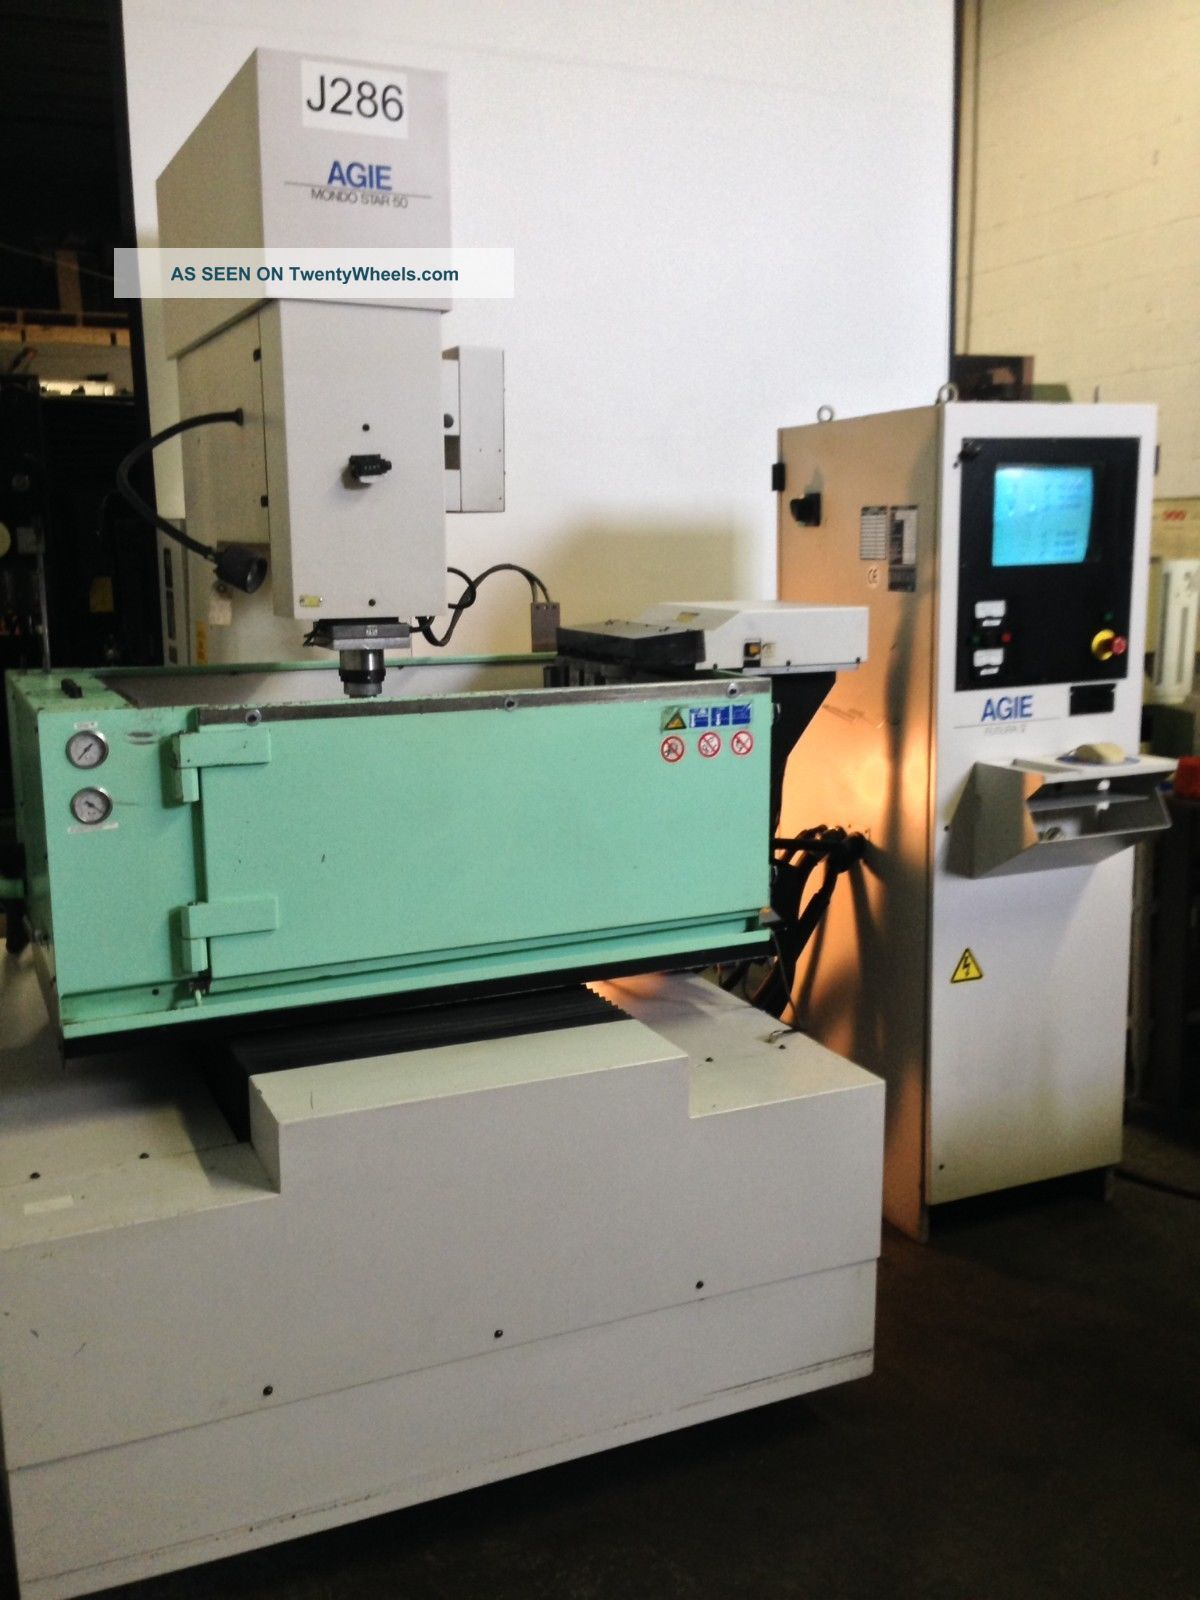 Agie Elox Mondo Star 50 Cnc Sinker Edm W/ Atc - 3000 Edm Hours EDM Machines photo